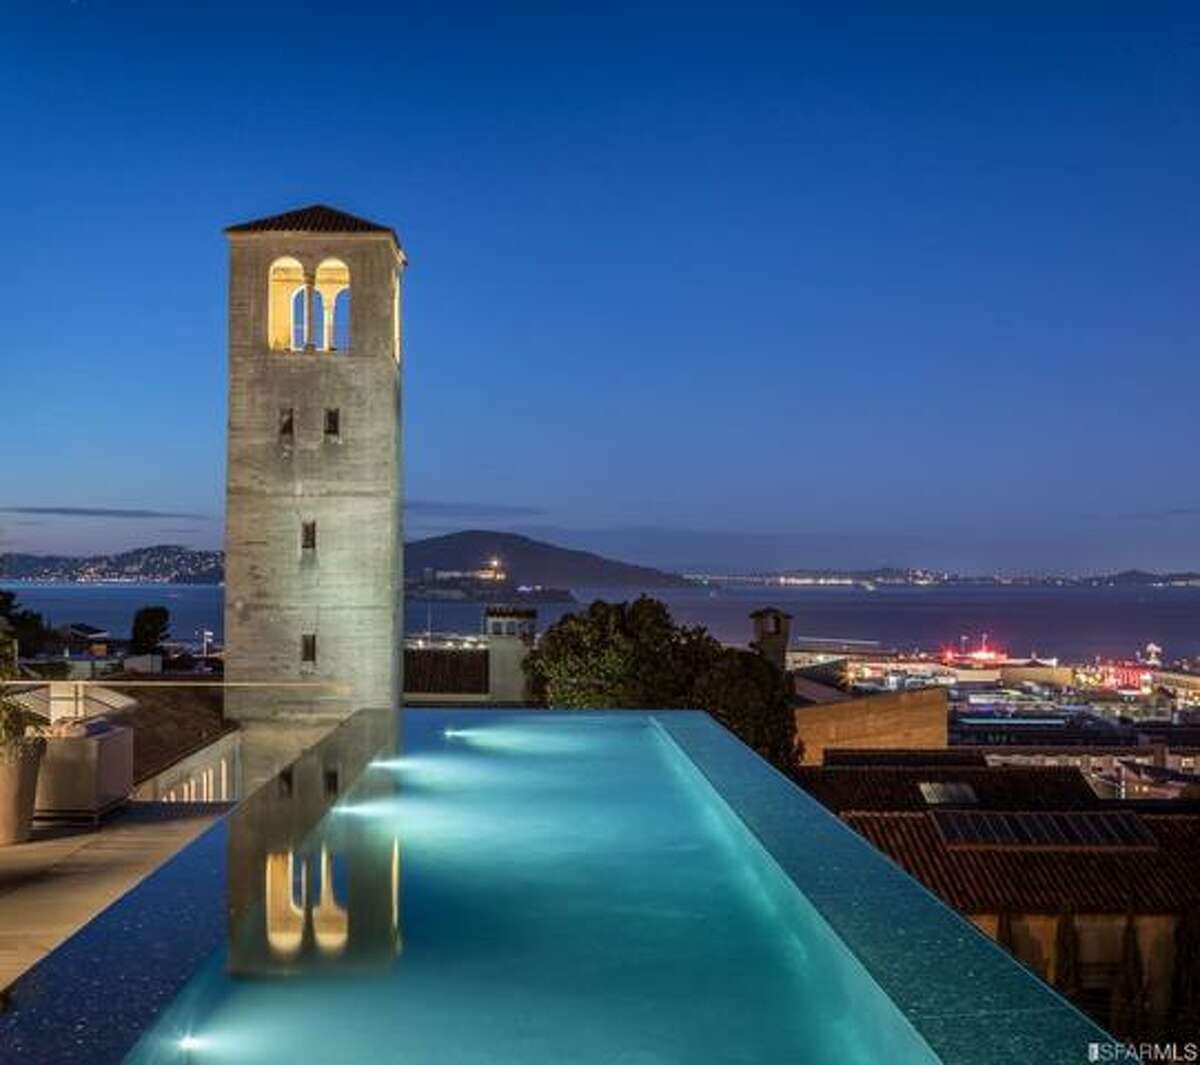 With a pool and a view and more, 950 Lombard is unsold for over a year, and still asks over $40M.